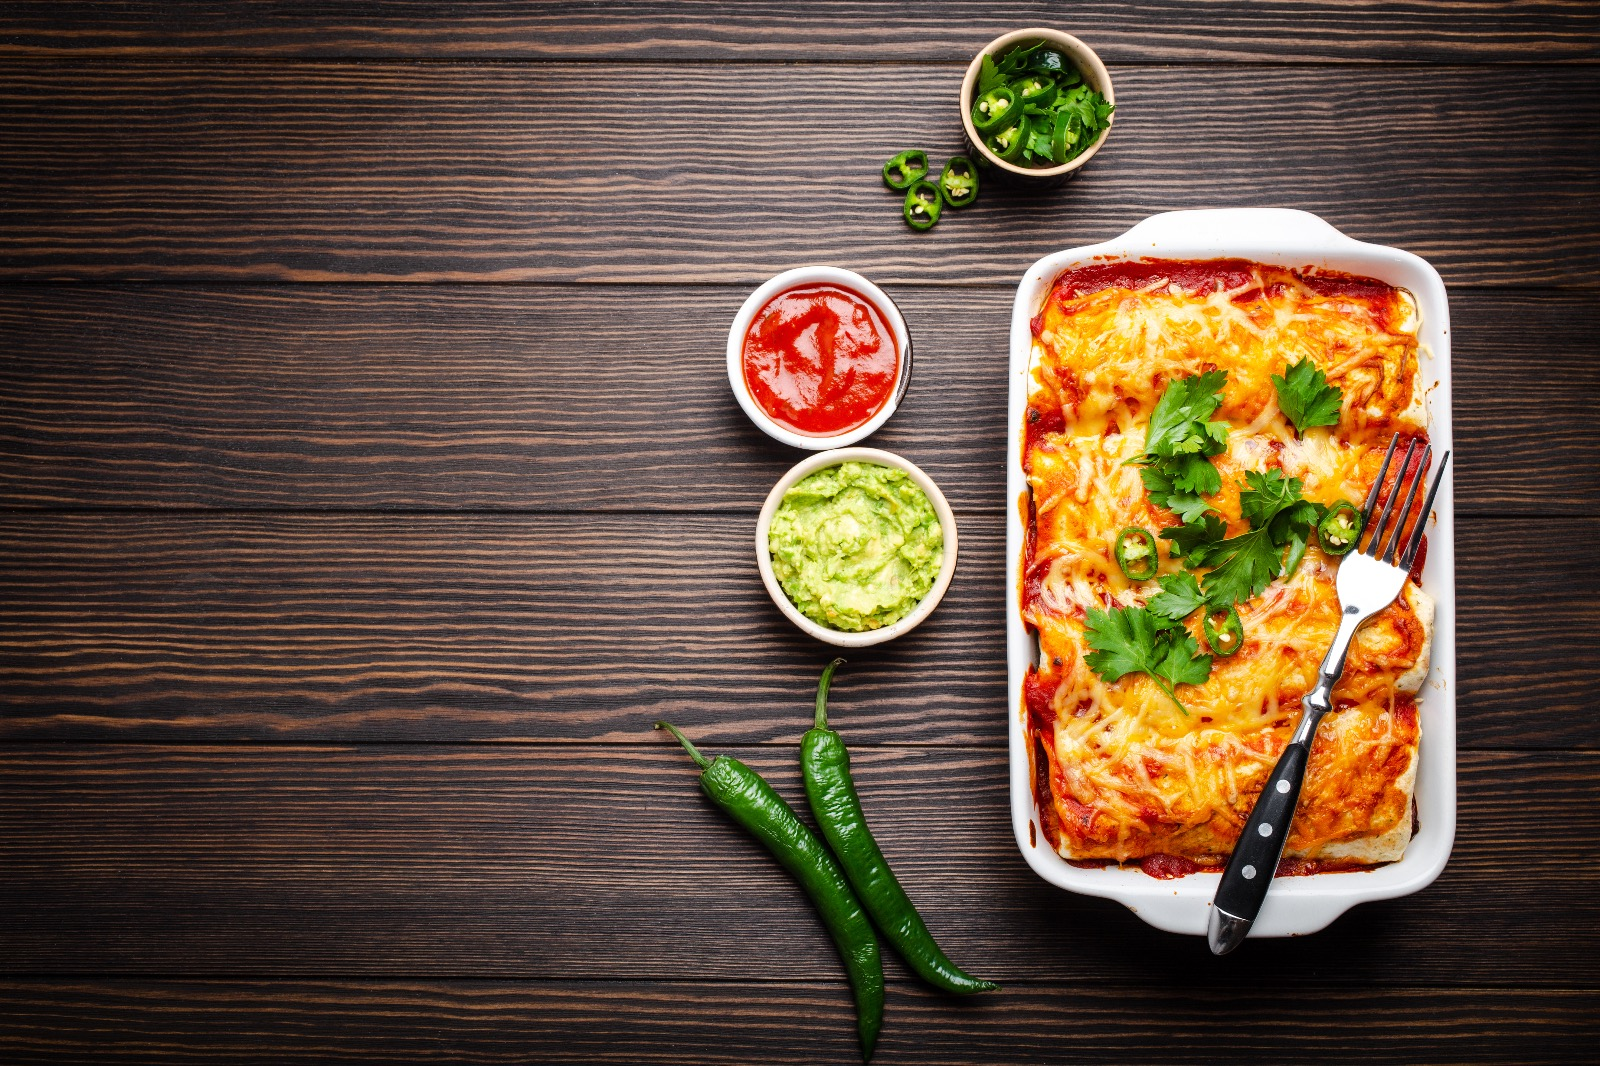 Baked Cheesy Chicken Enchiladas With Hatch Green Chiles - Beck & Bulow